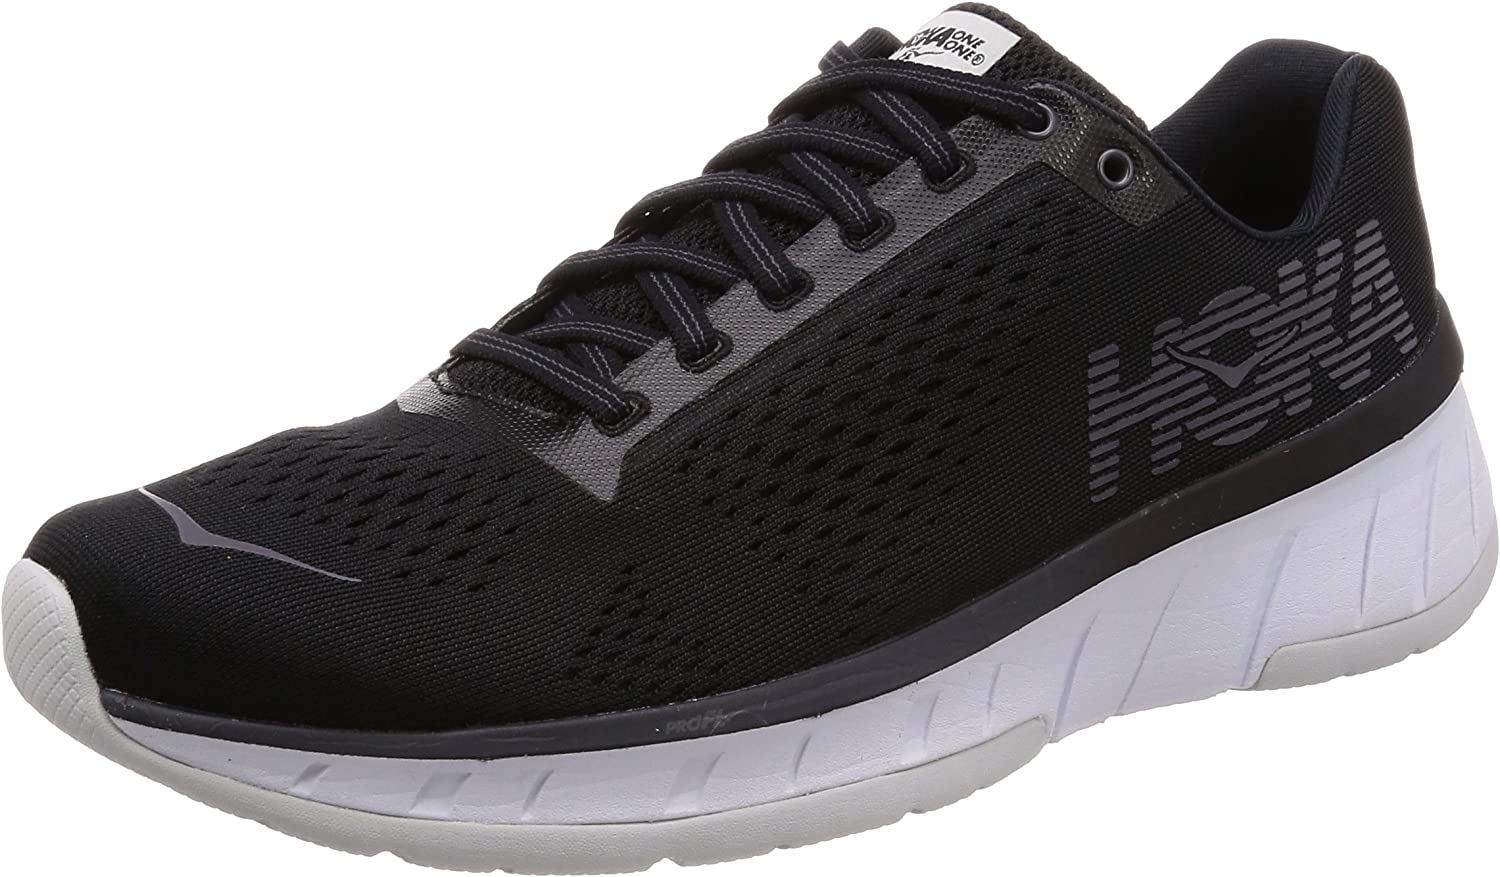 Hoka One One Cavu Charcoal Black